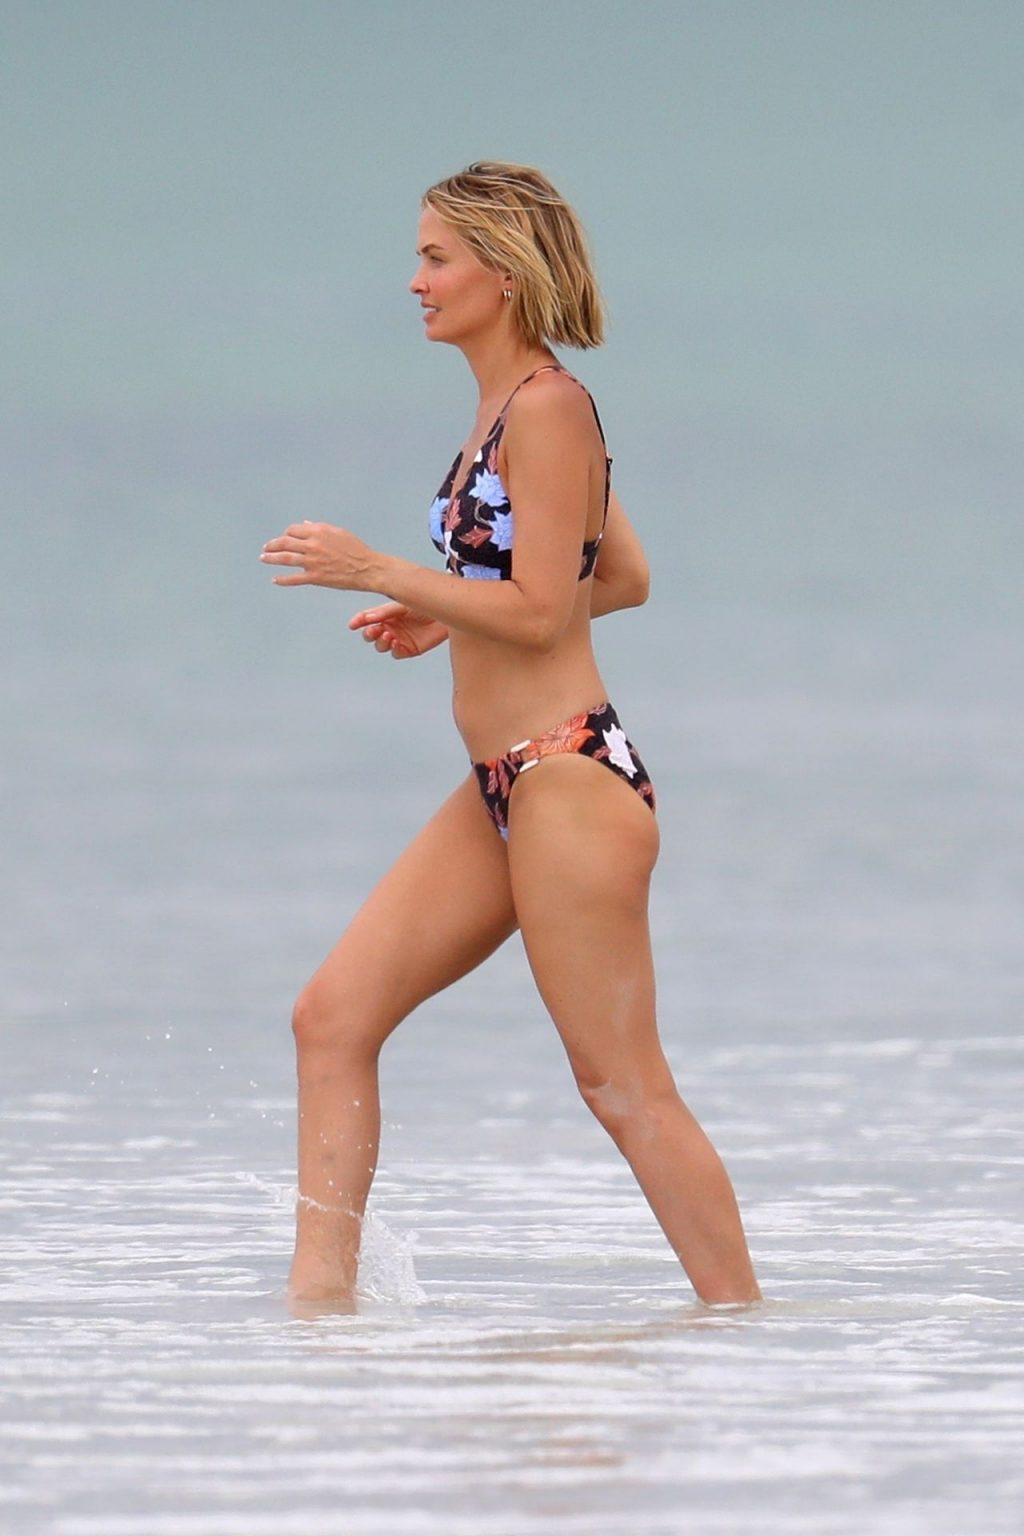 Lara Worthington is Pictured at a Photoshoot for Seafolly (36 Photos)